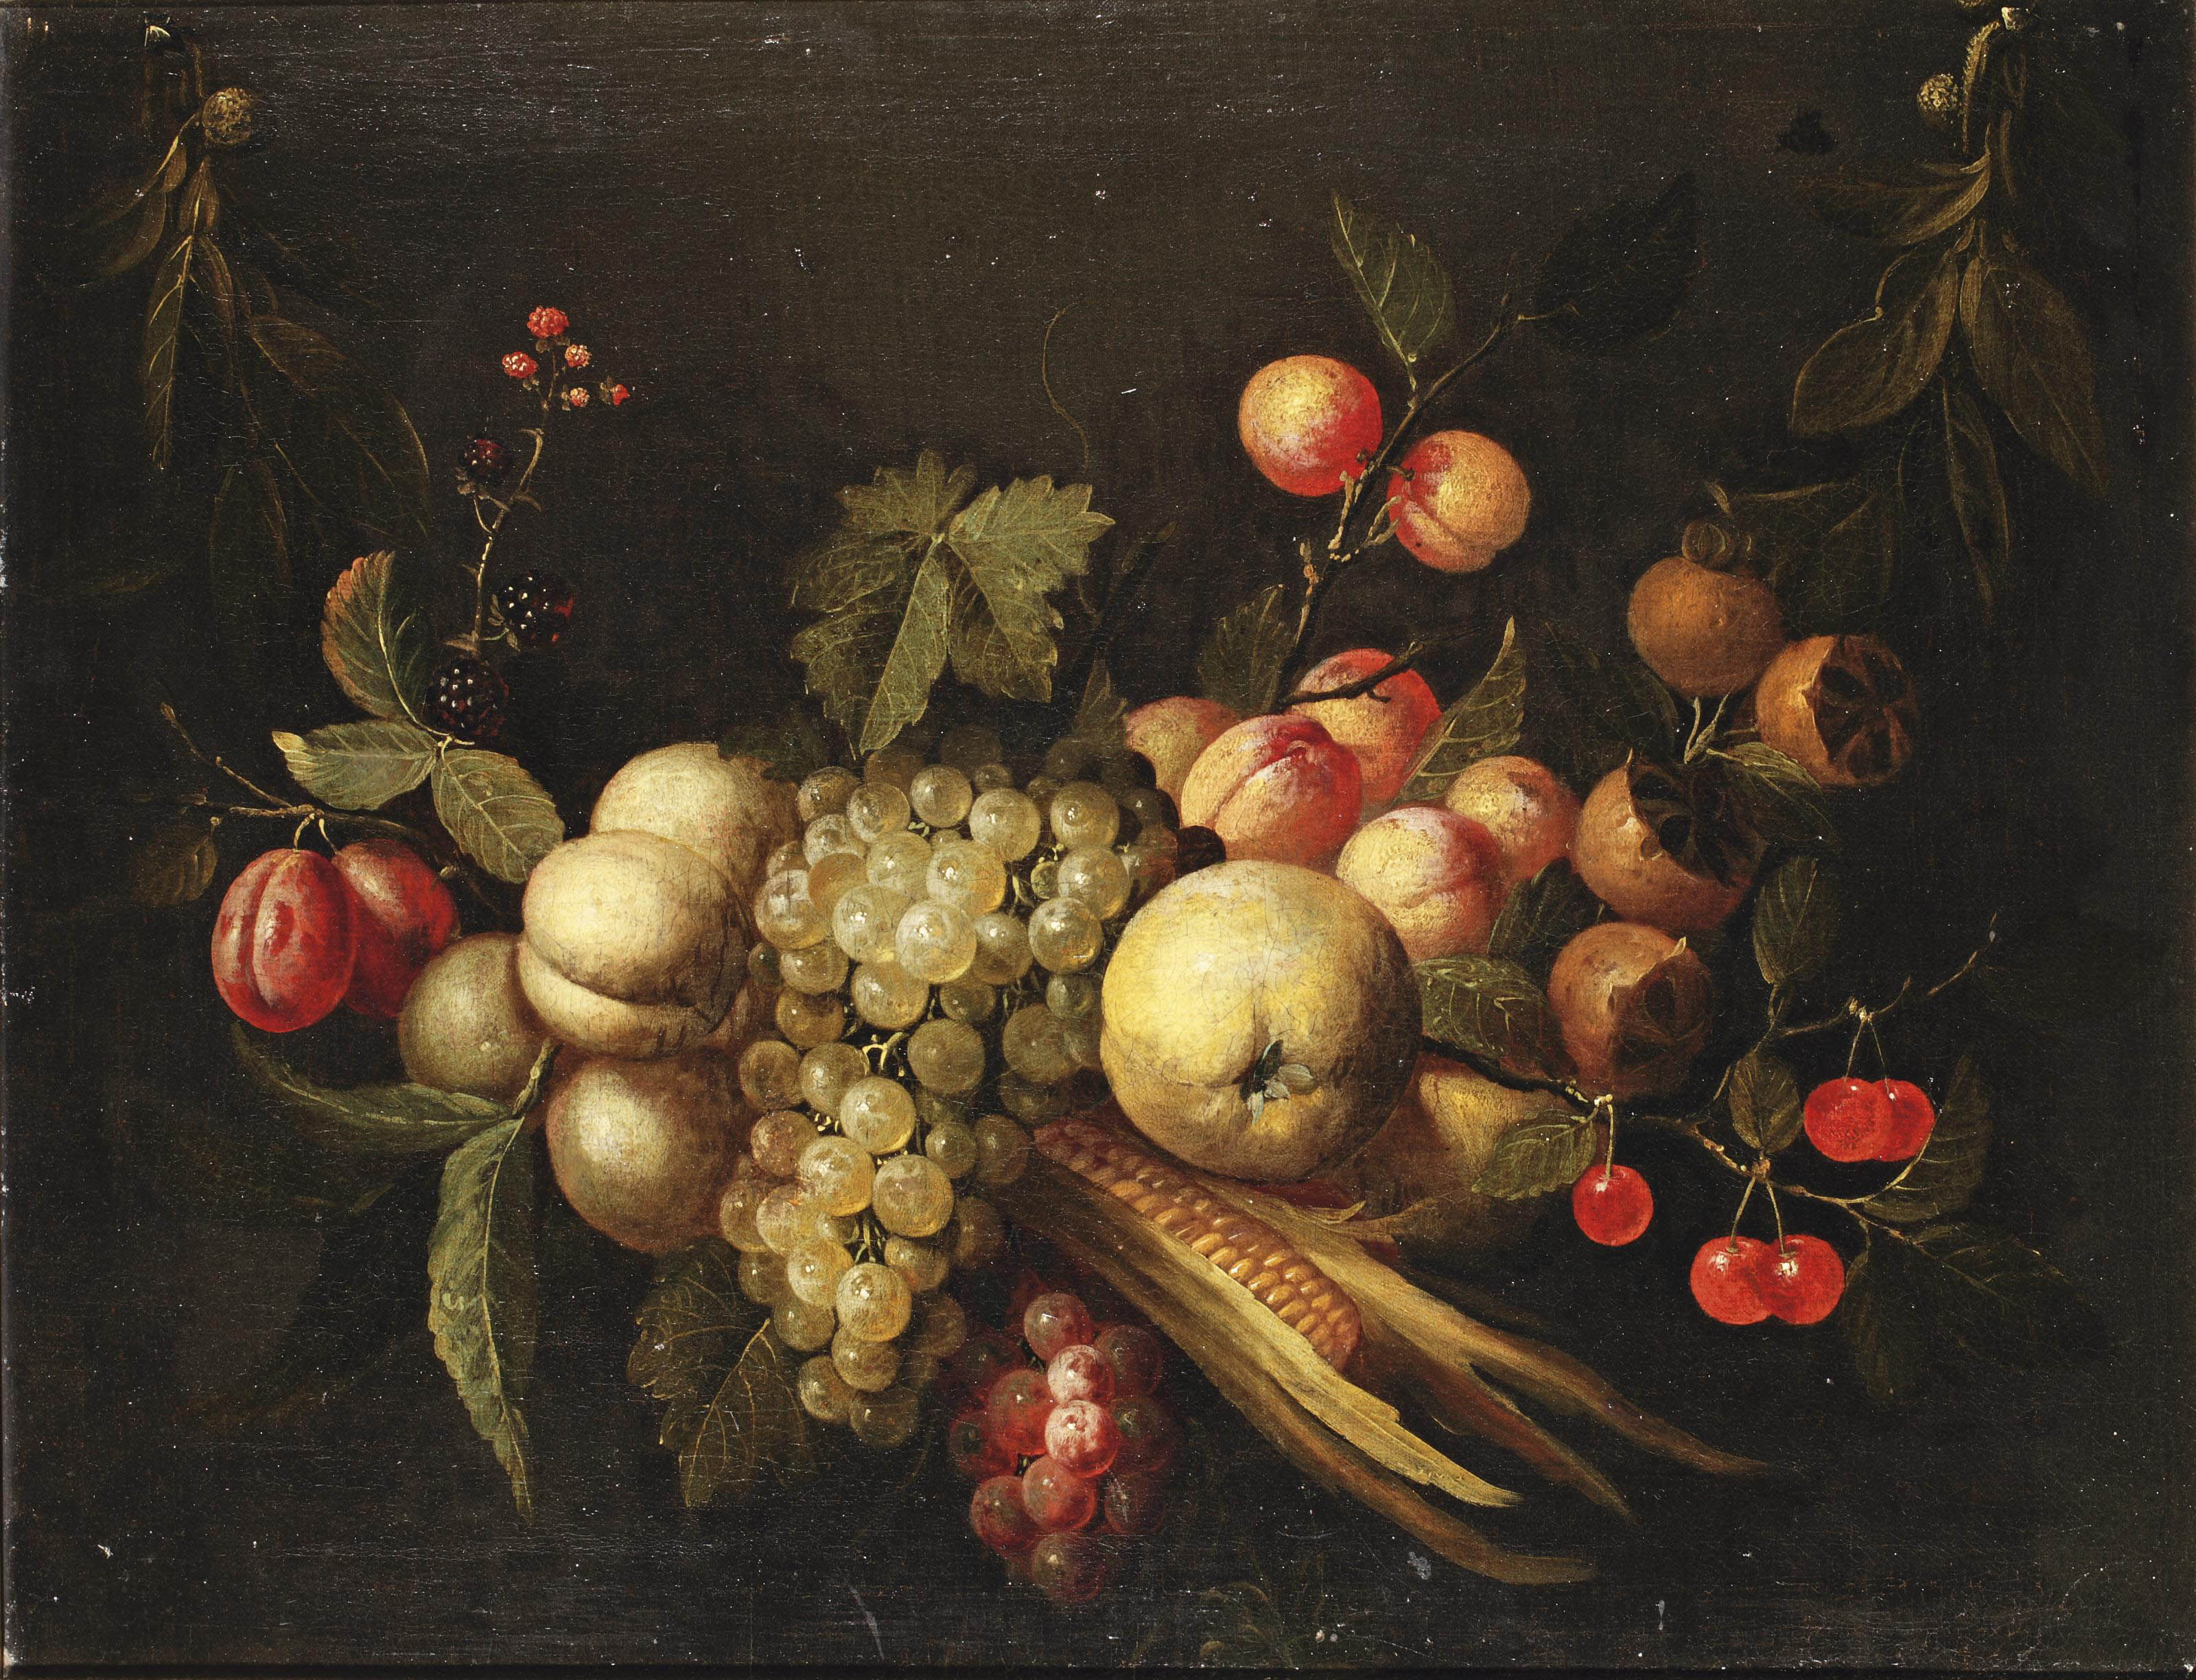 A garland with plums, blackberries, peaches, white and black grapes, a quincy, corn, cherries, apricots and other fruit